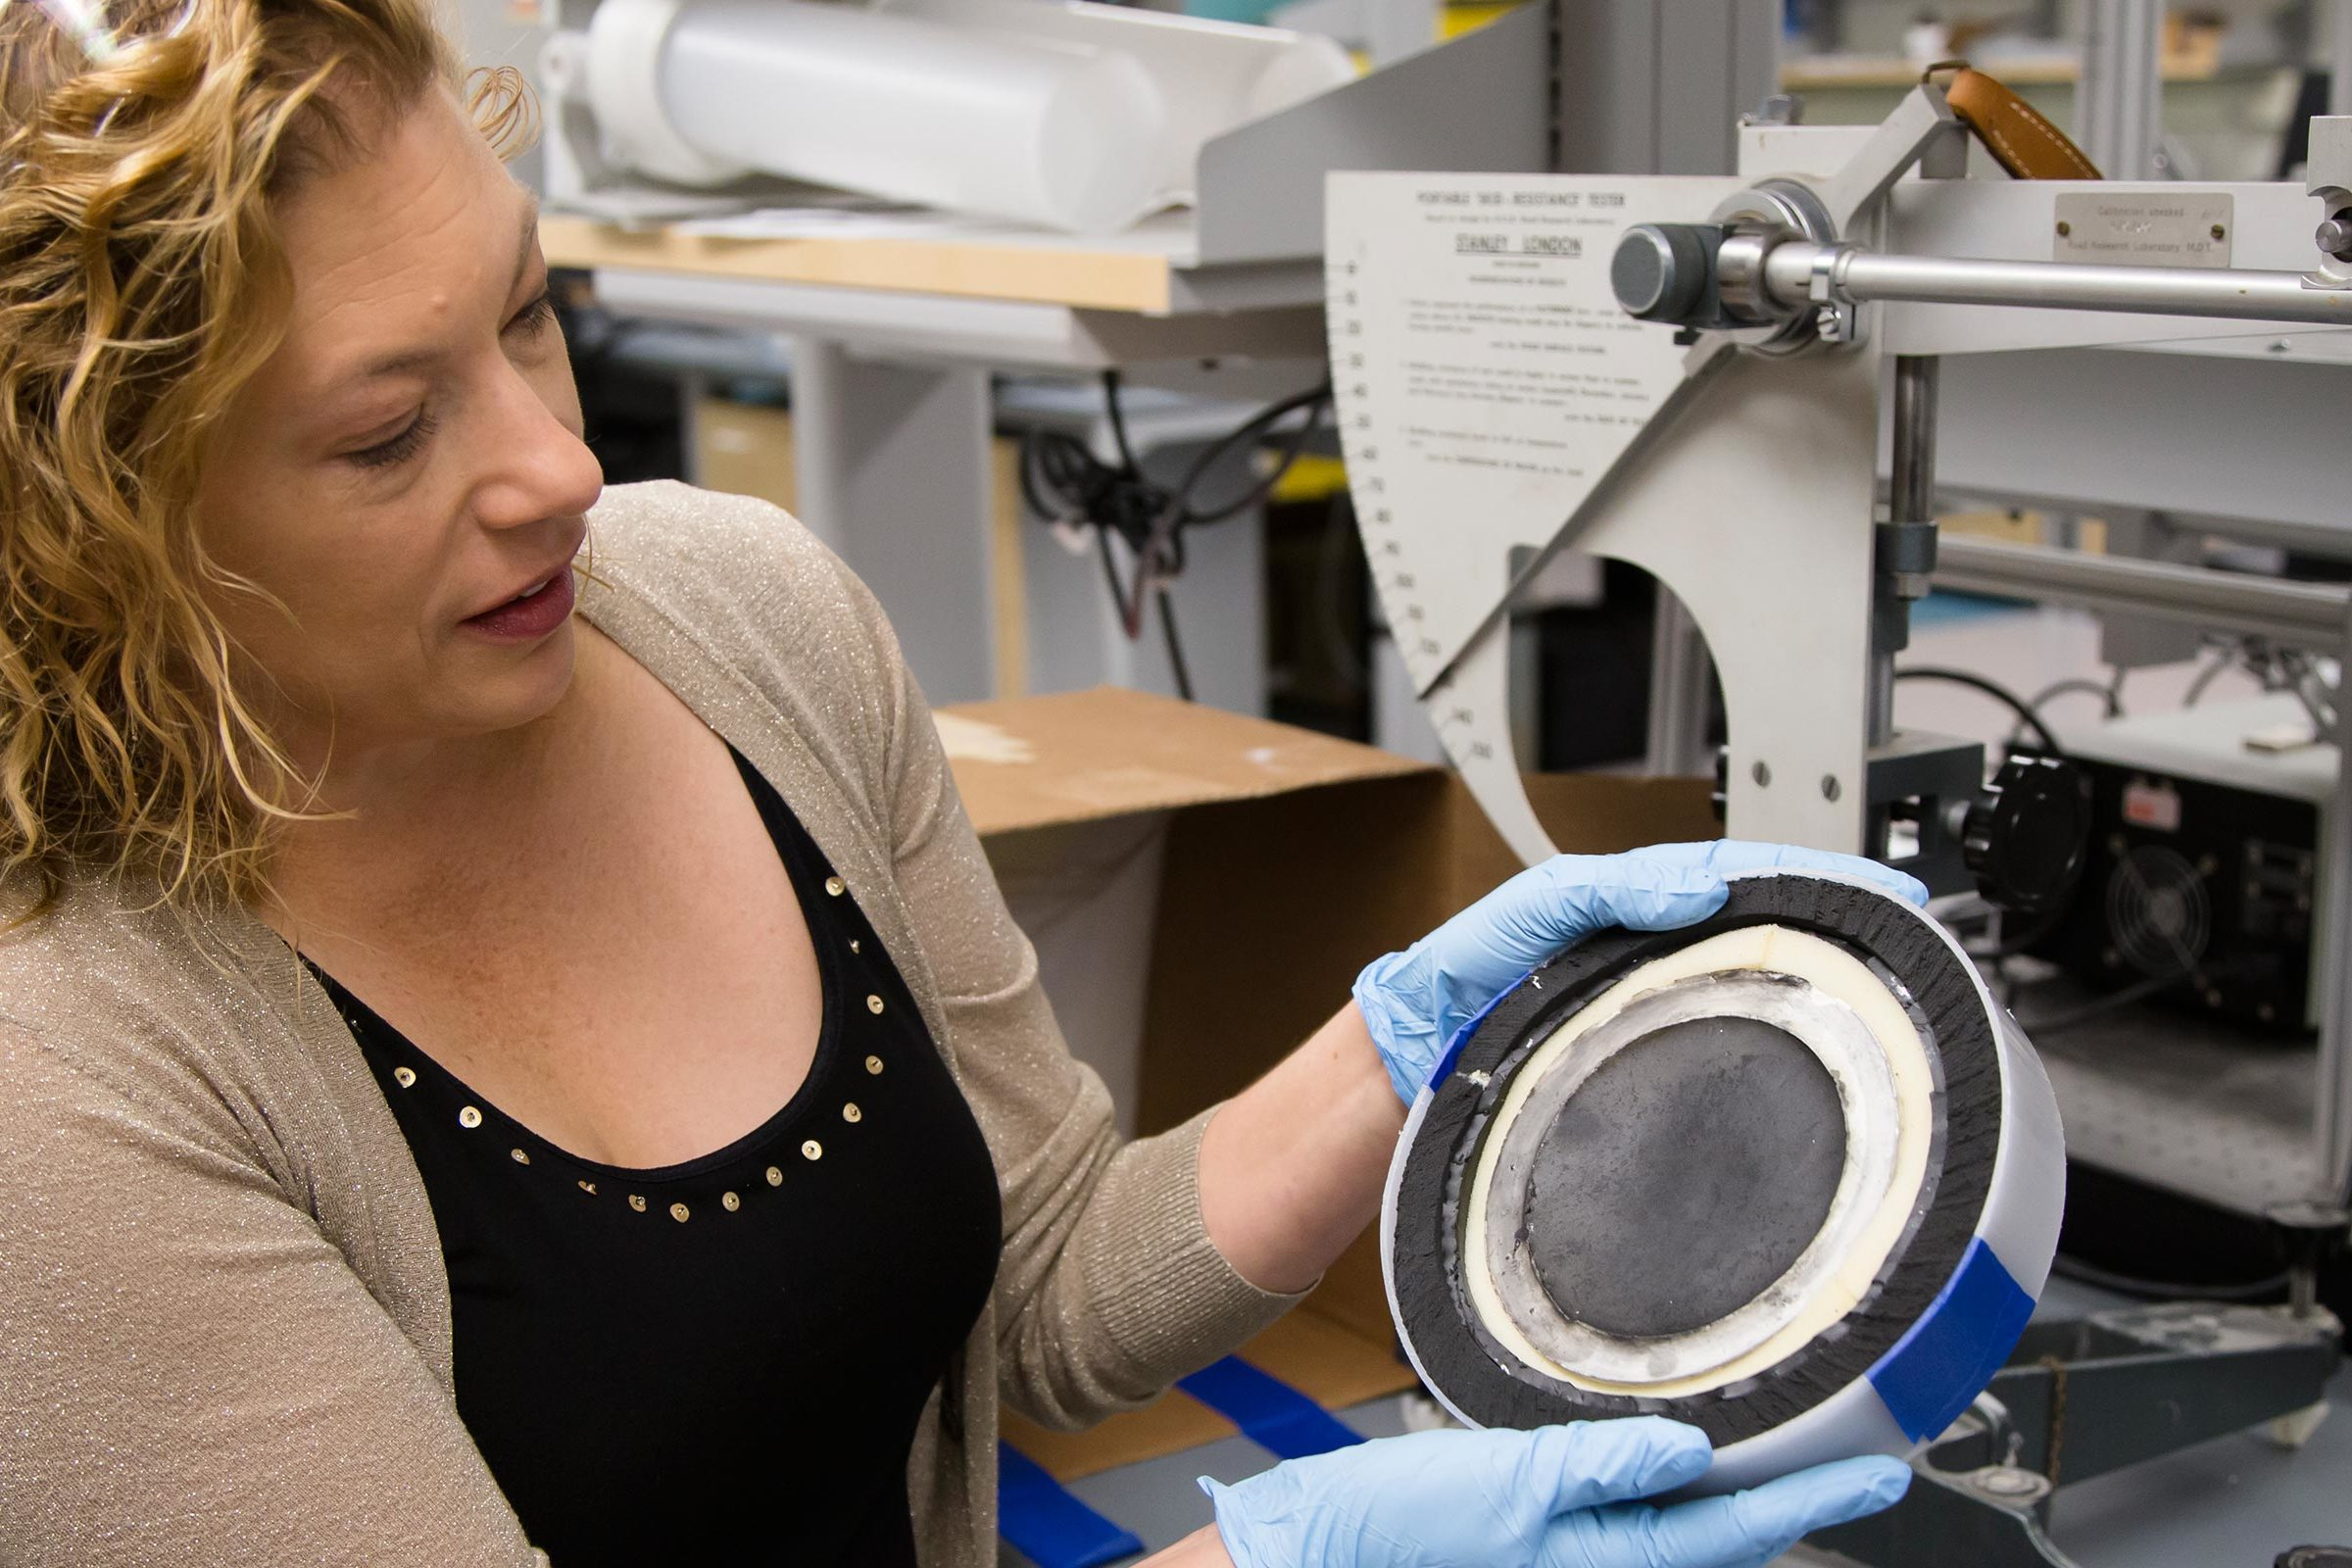 A woman holds a disk of concentric circles representing layers of the helmet.